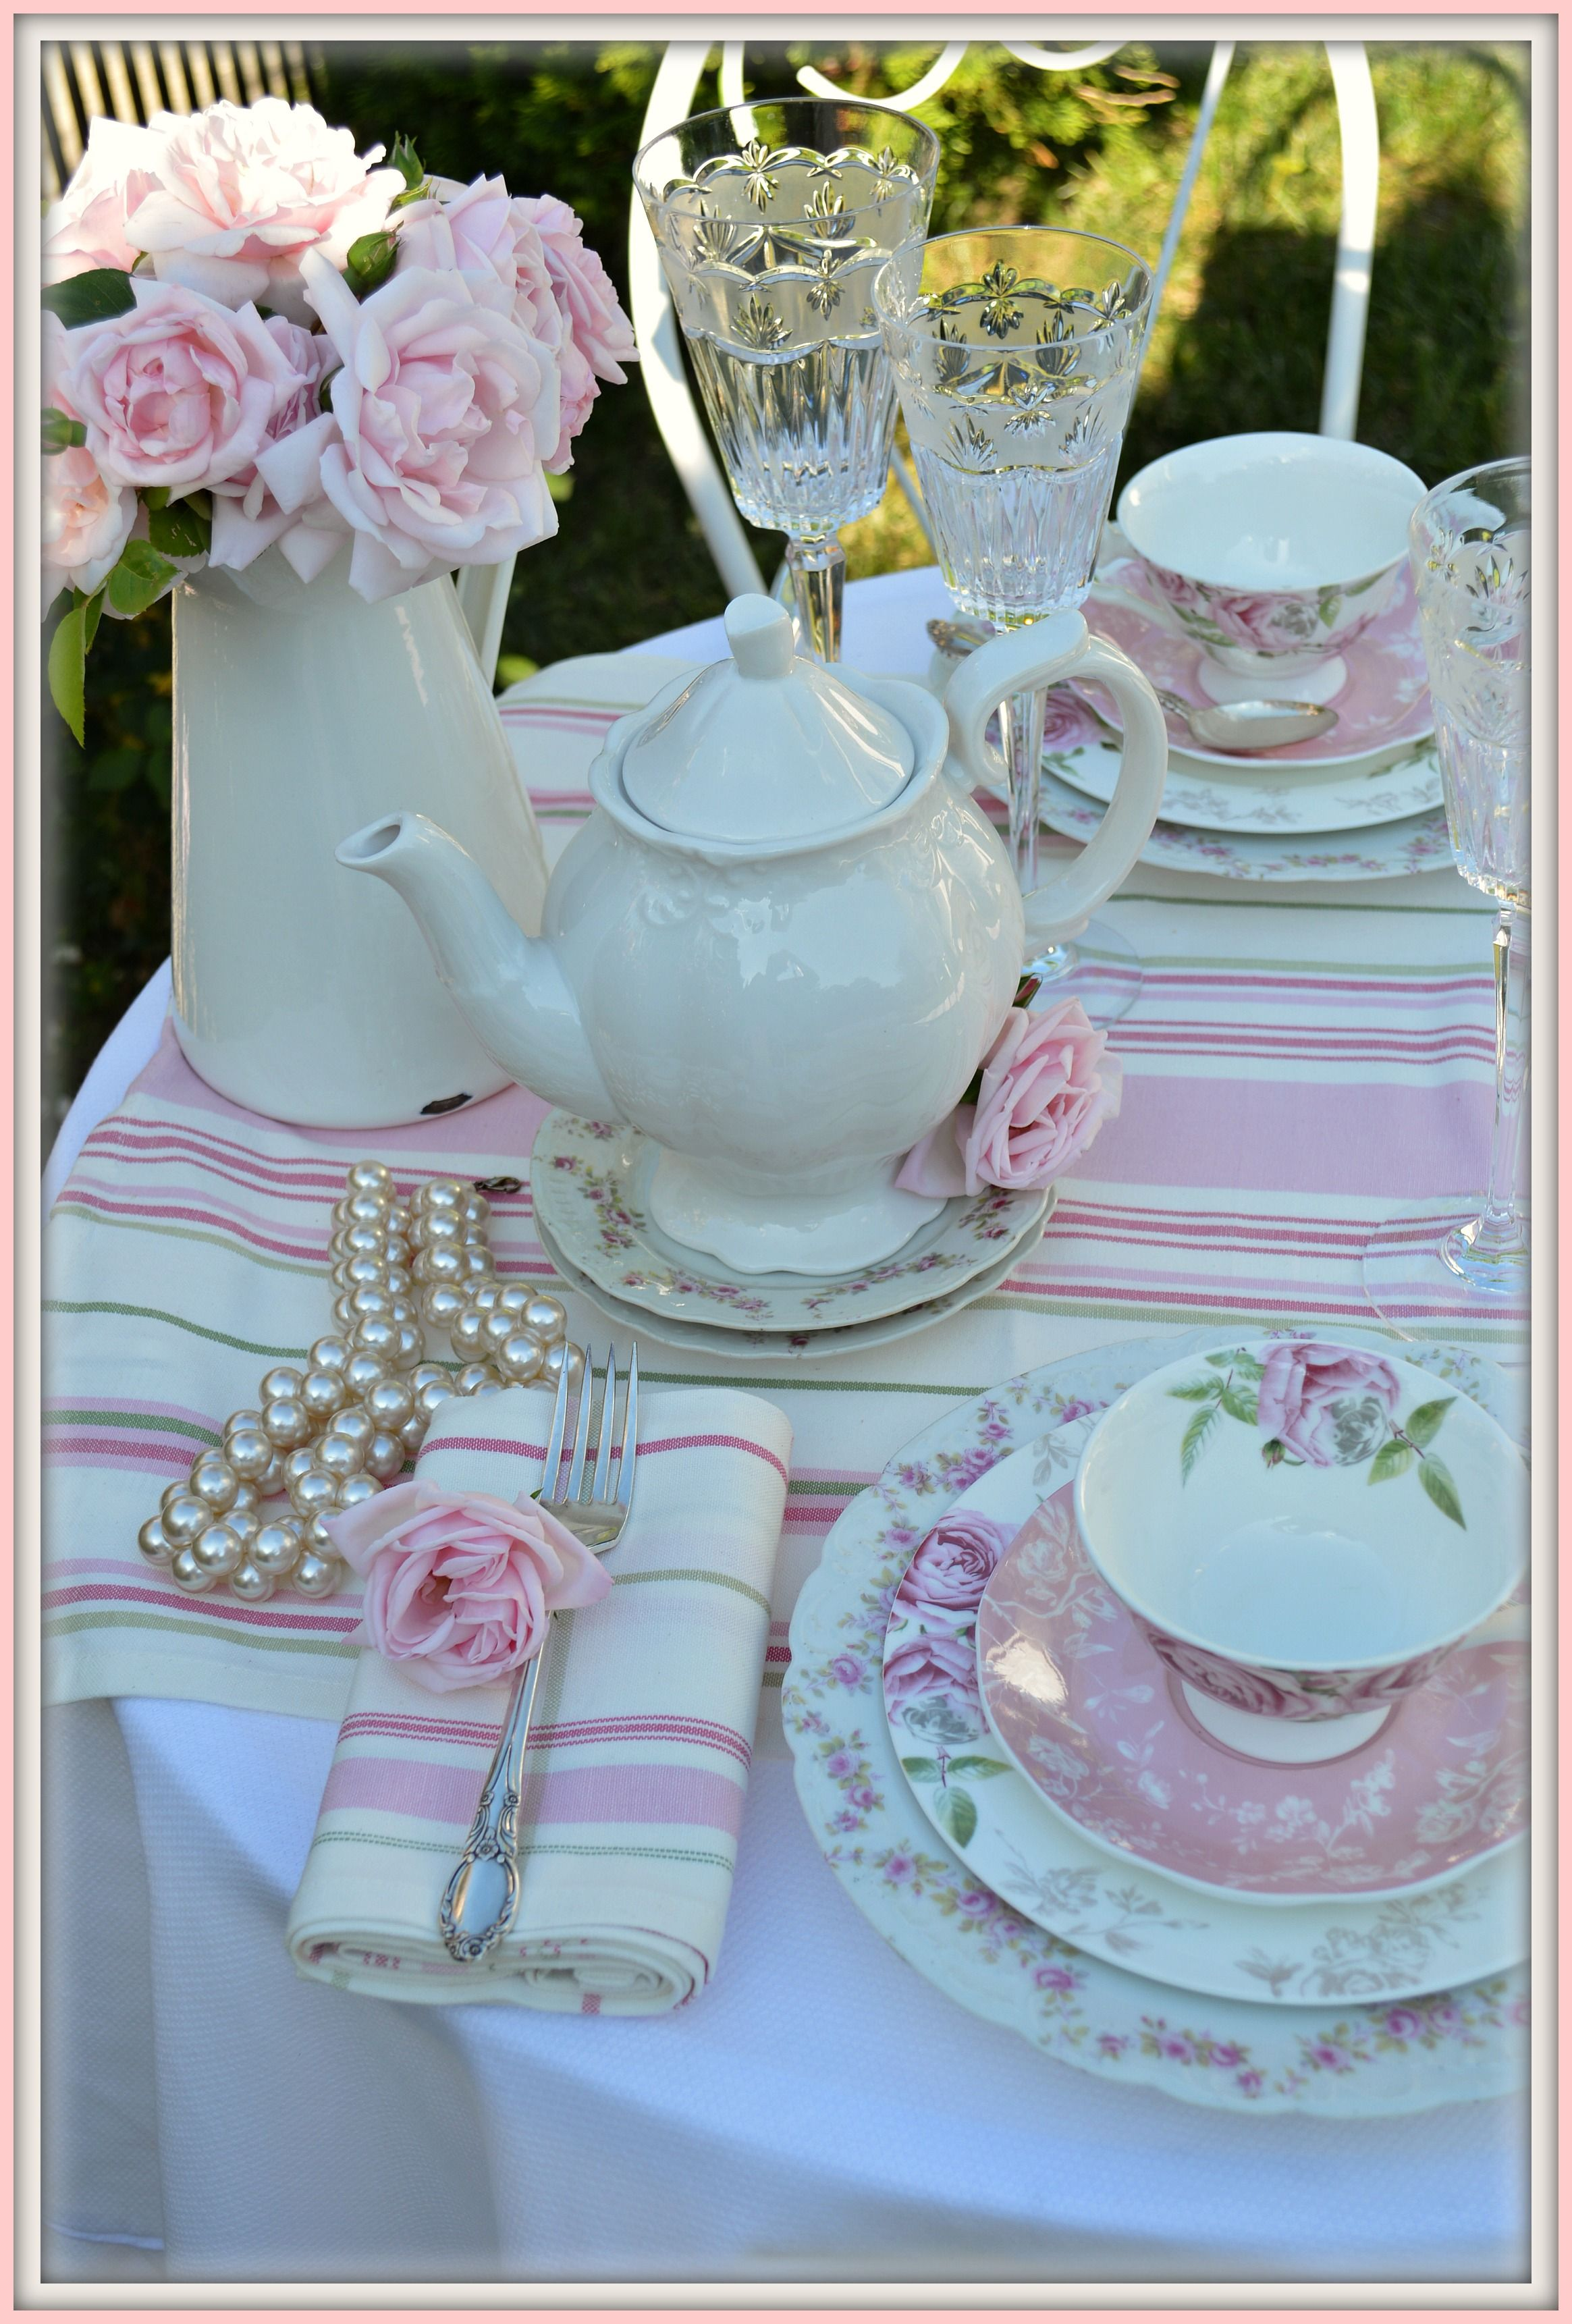 I Like How The Striped Napkins Balances Fl Pattern Of Teacups